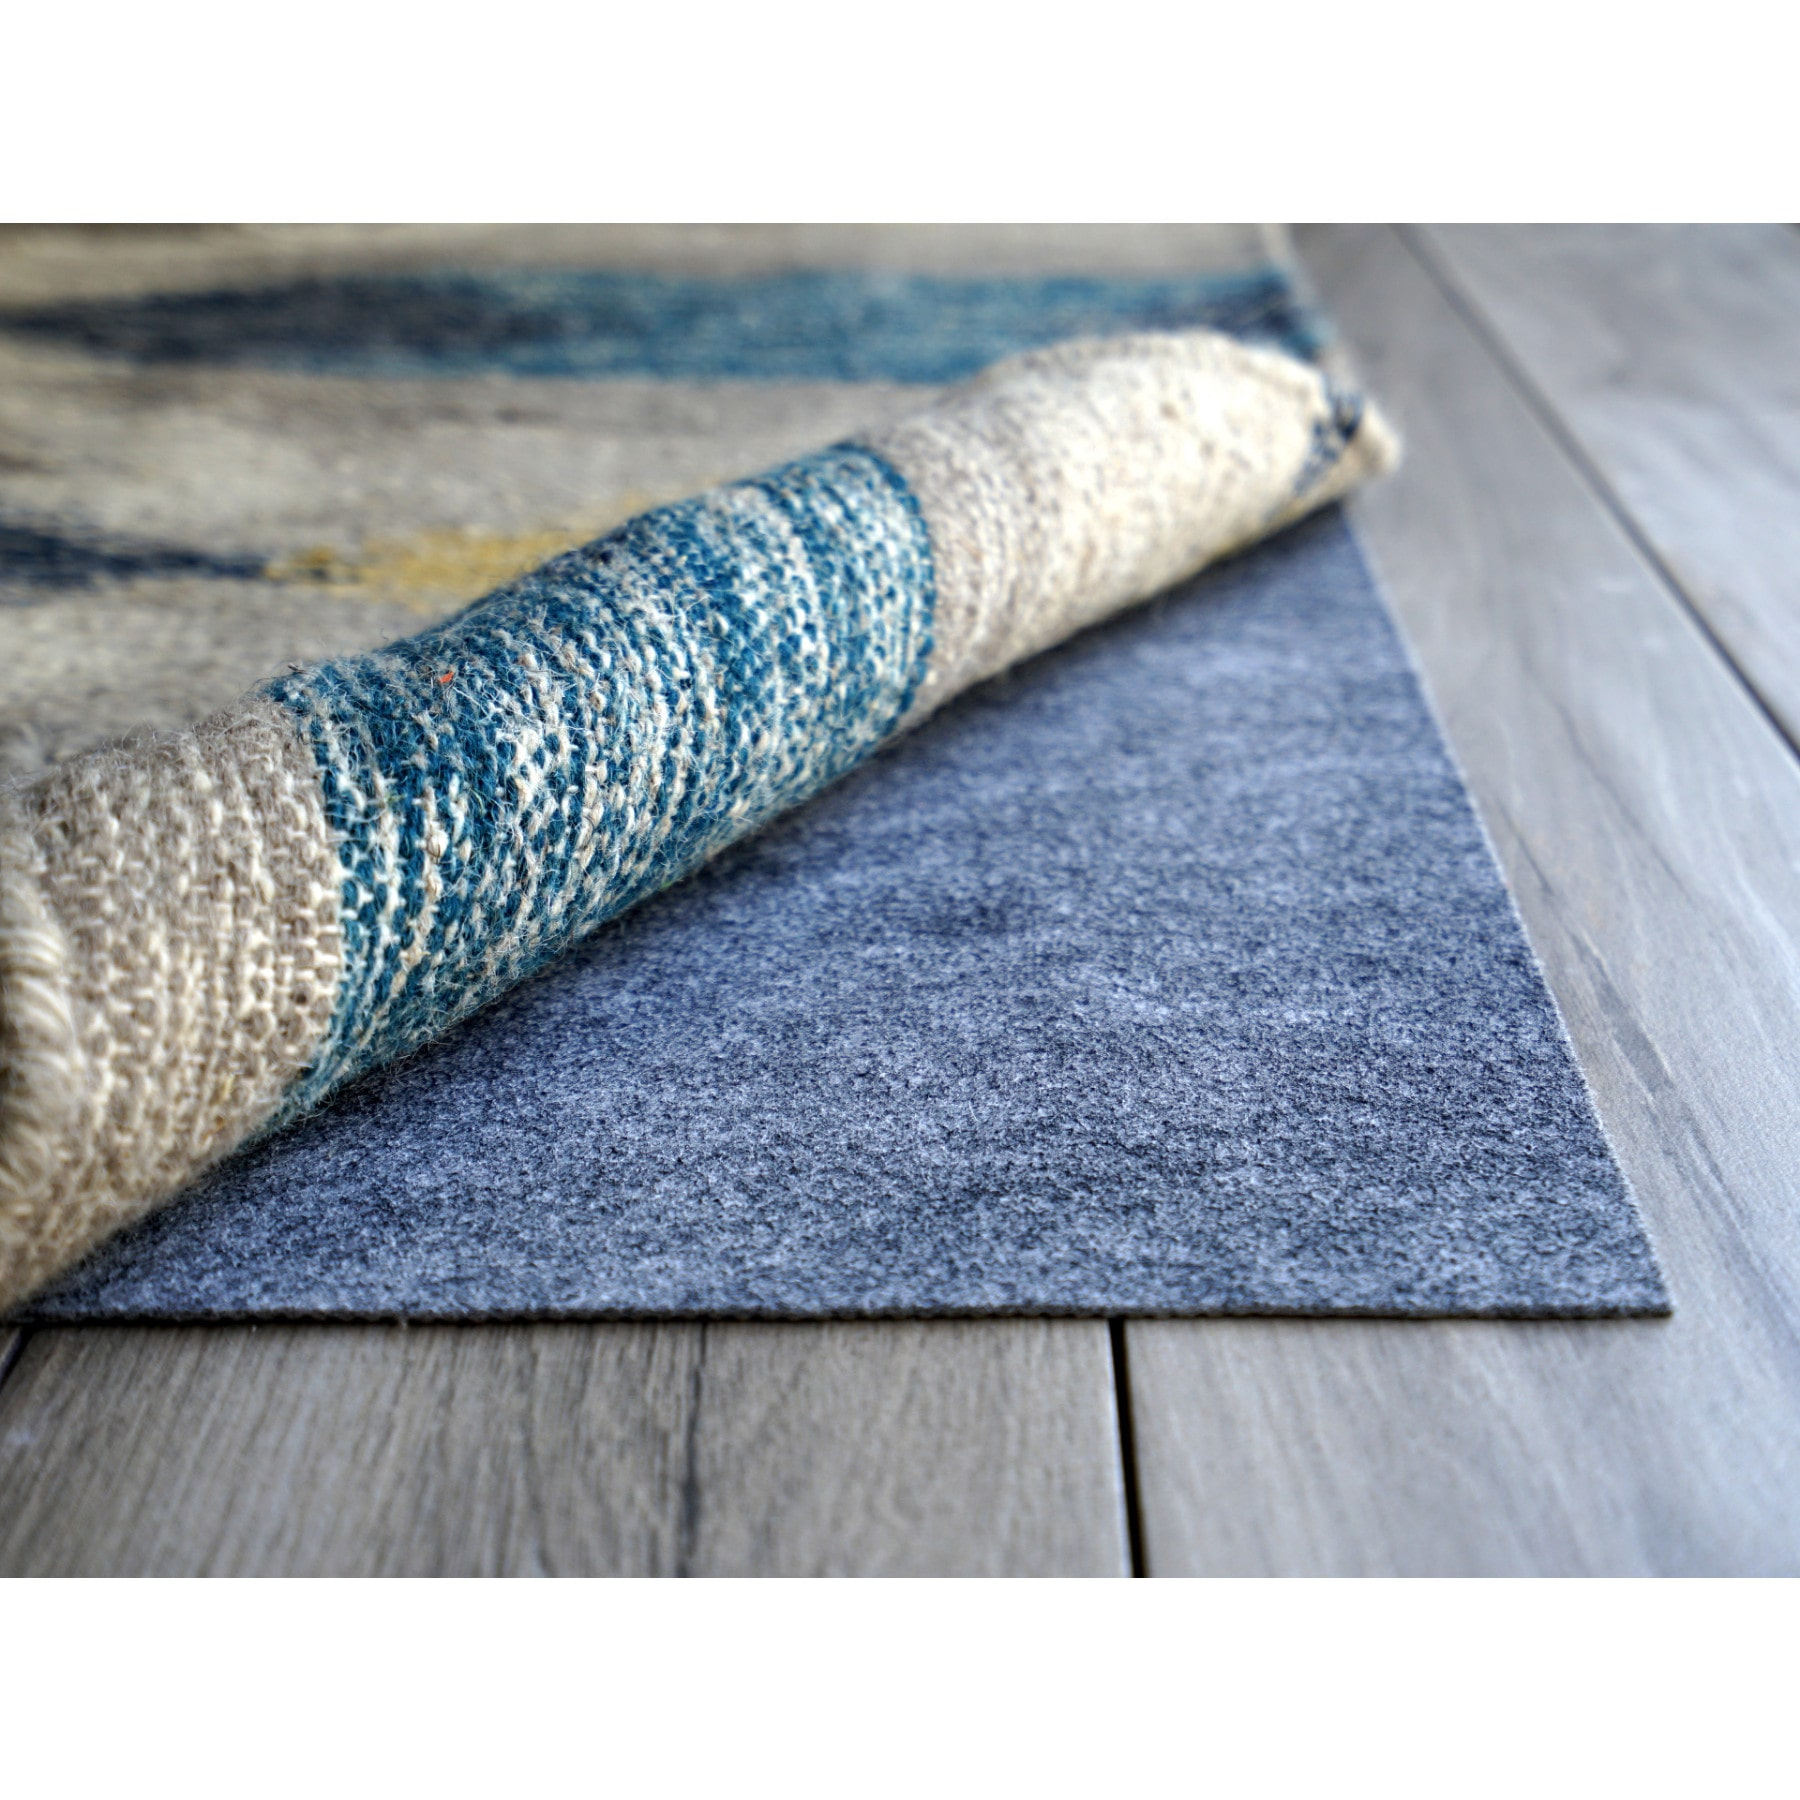 Rug Pad USA AnchorPro Low Profile Non-slip Felt & Rubber Rug Pad (6' x 9') by Overstock